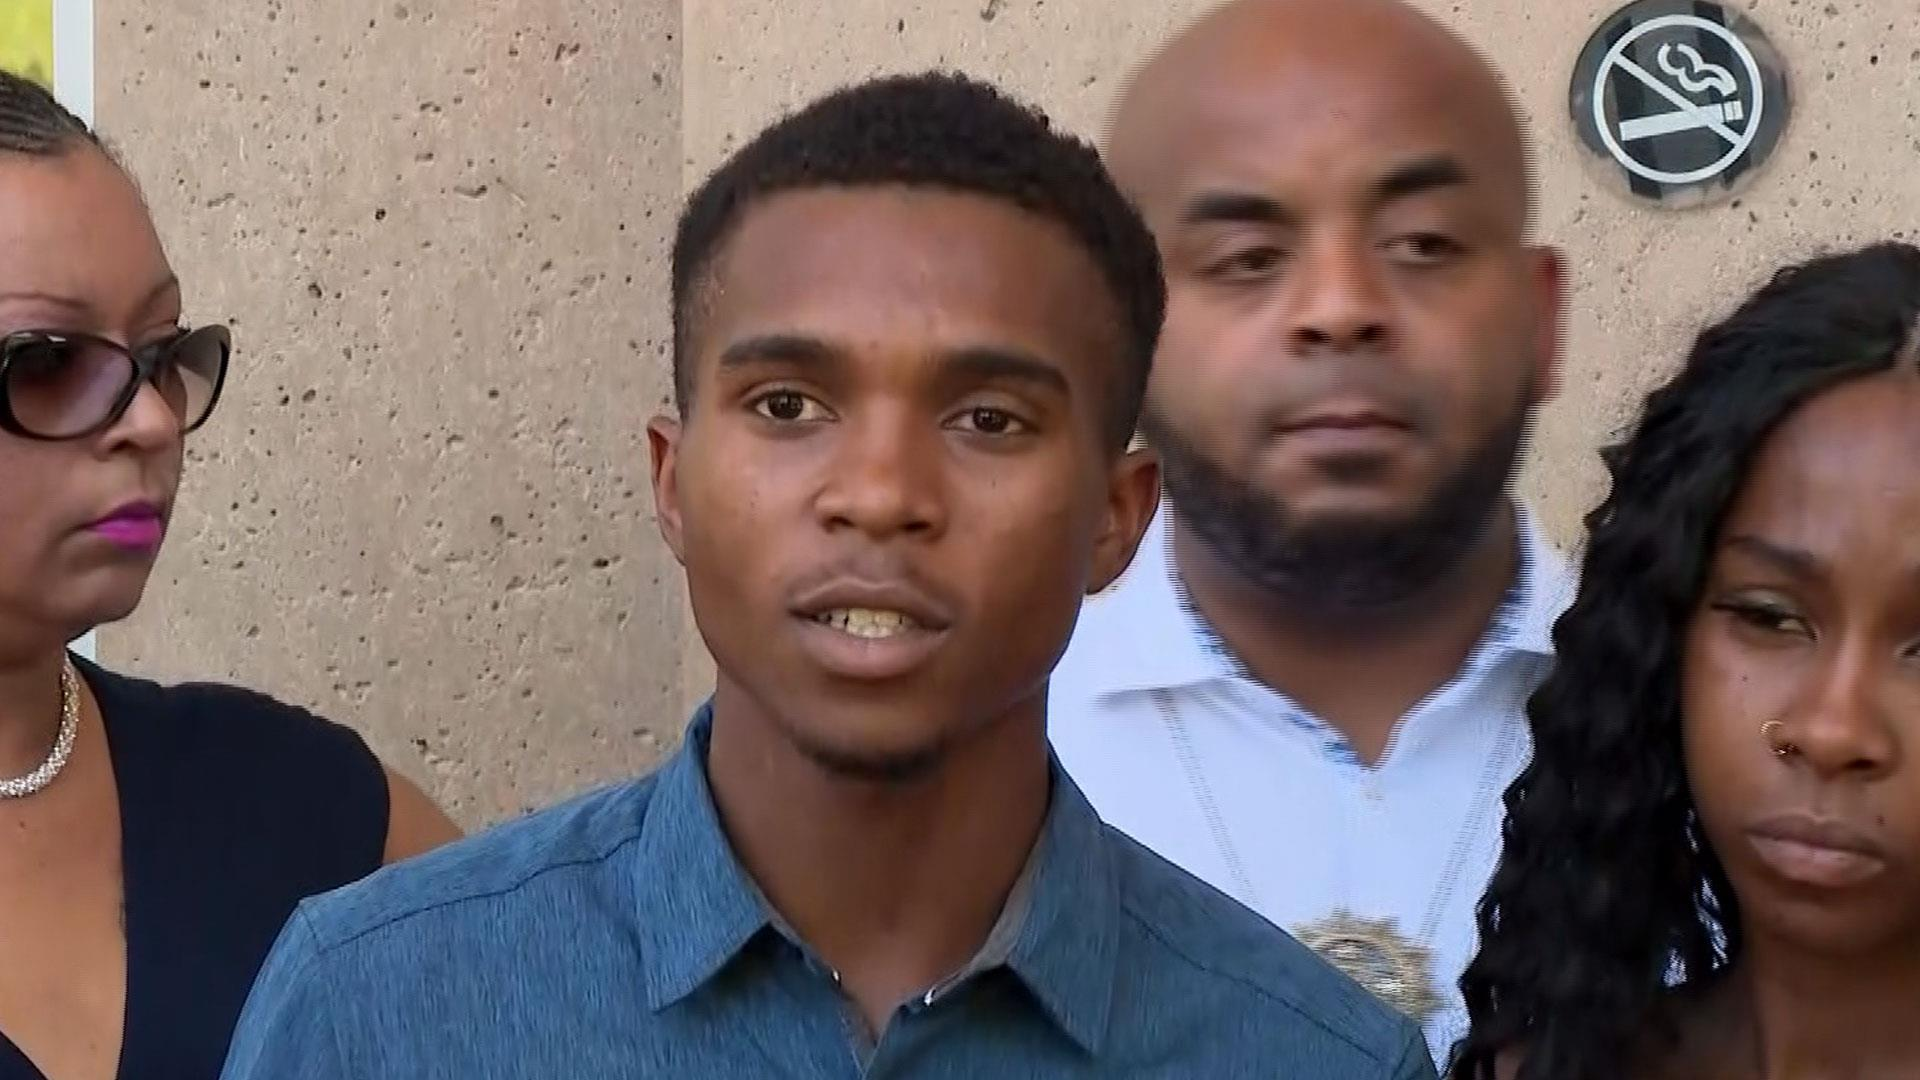 Phoenix man feared family was about to be 'executed' by police over stolen doll